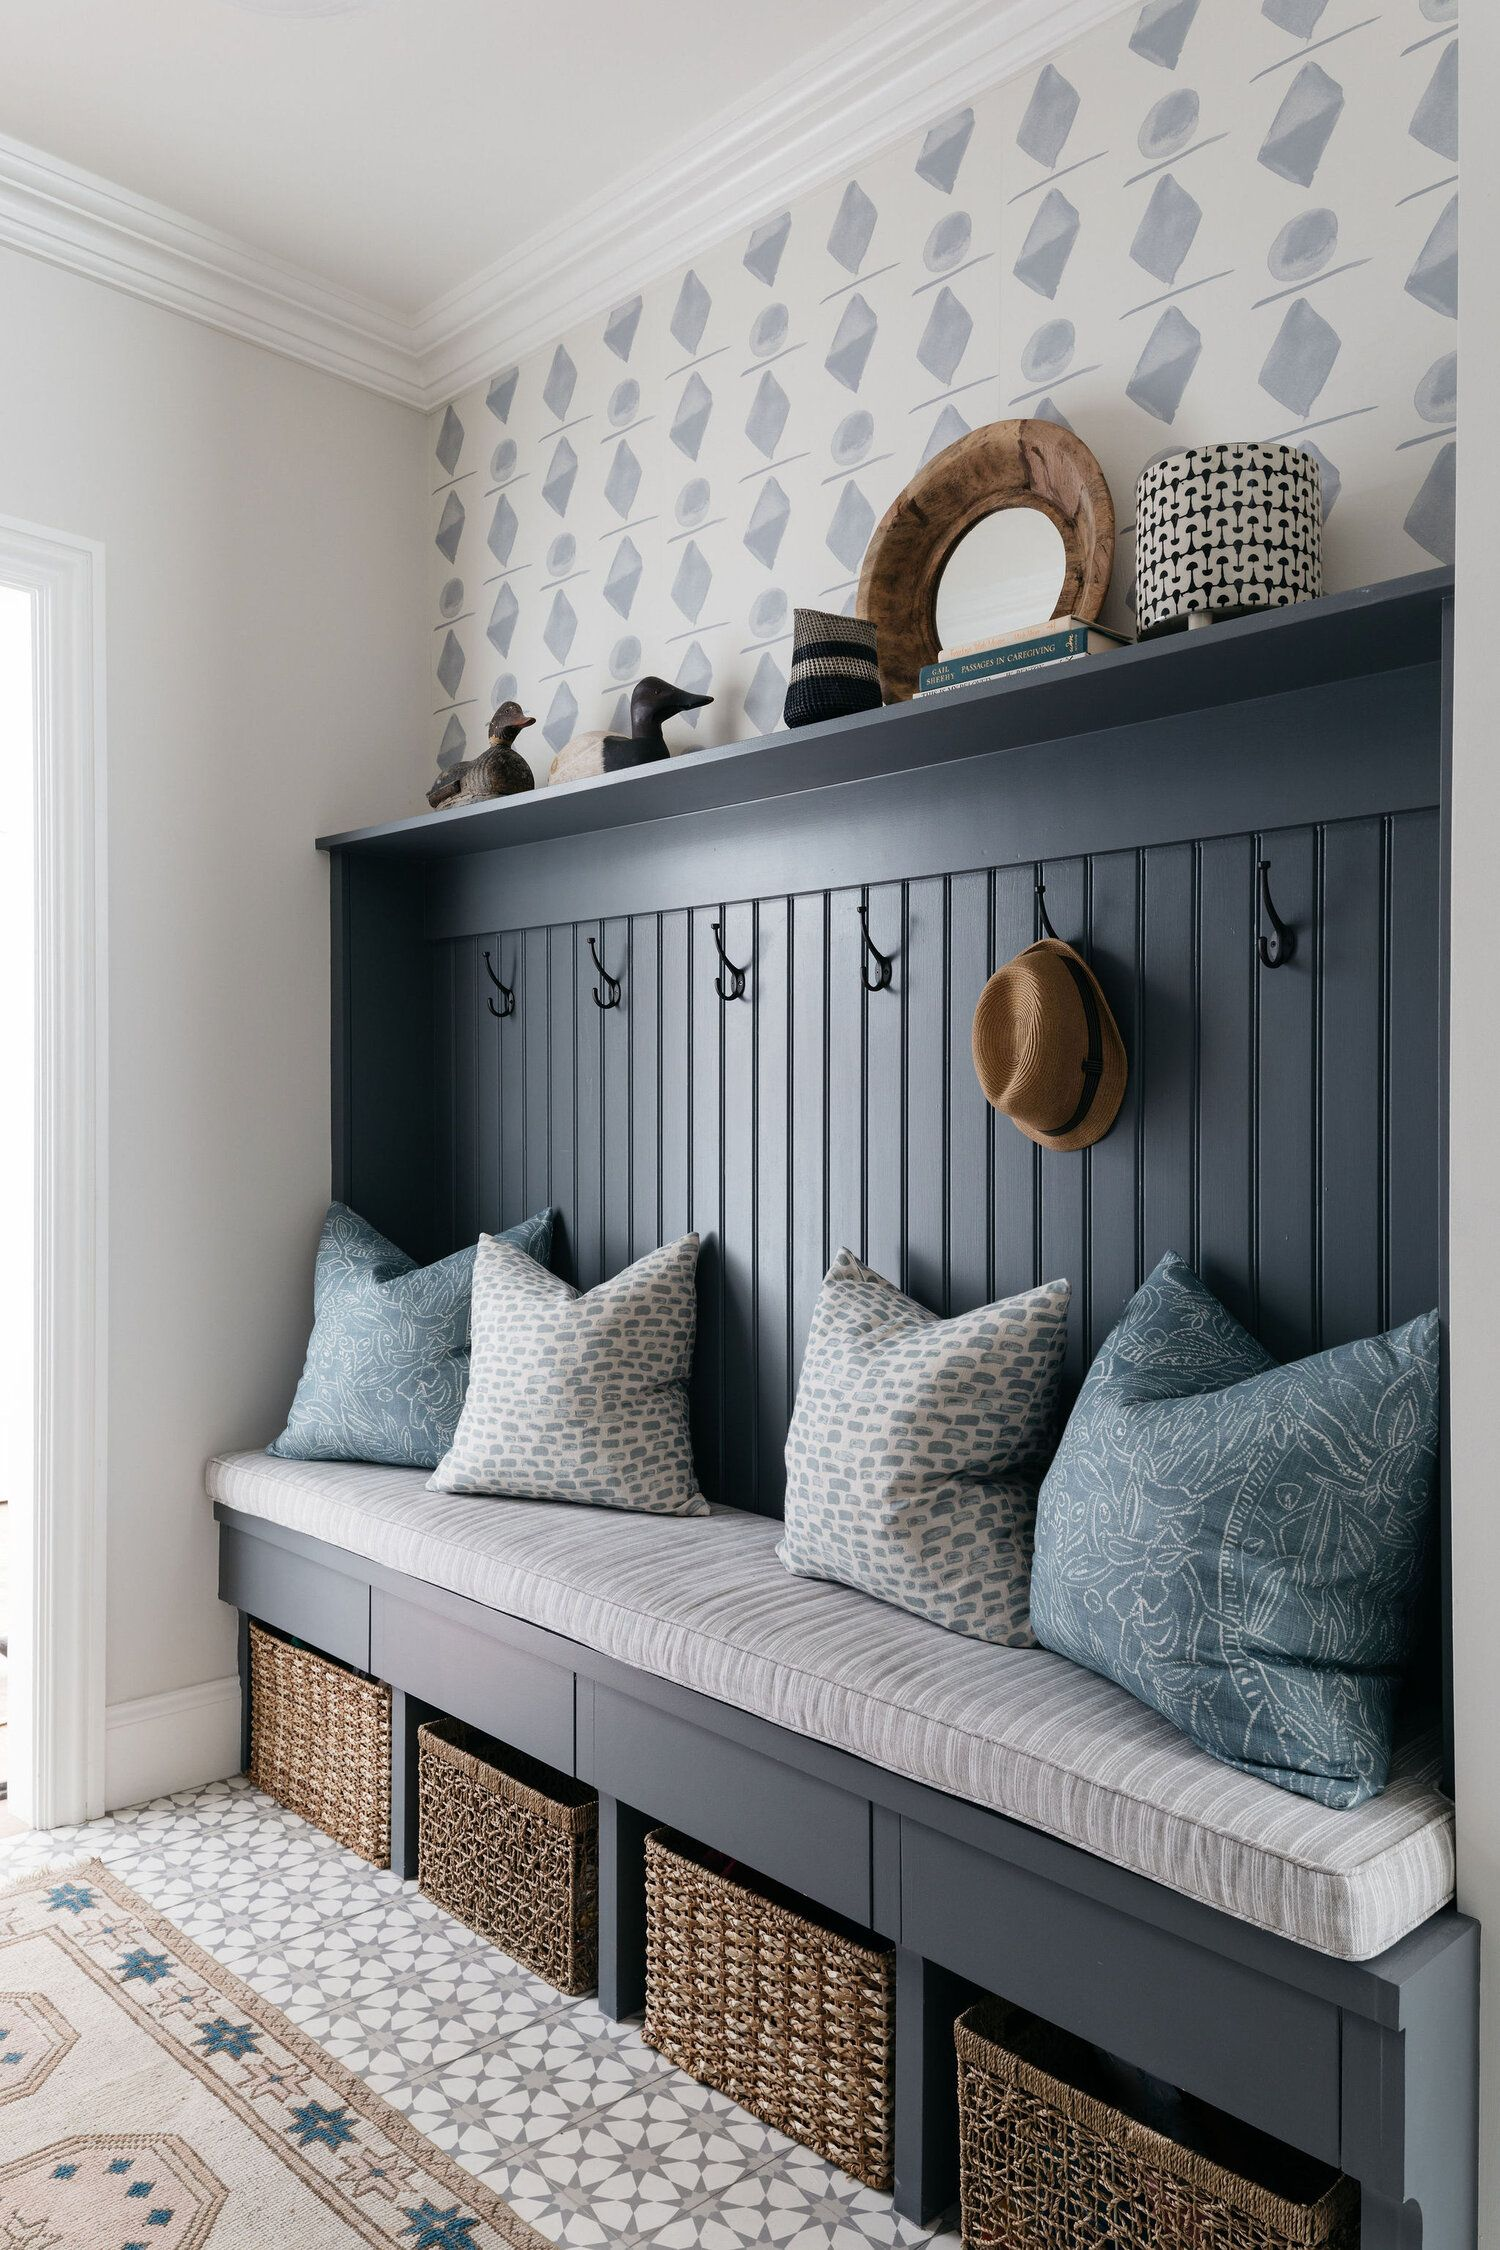 5 Spots To Transform A Space With Wallpaper